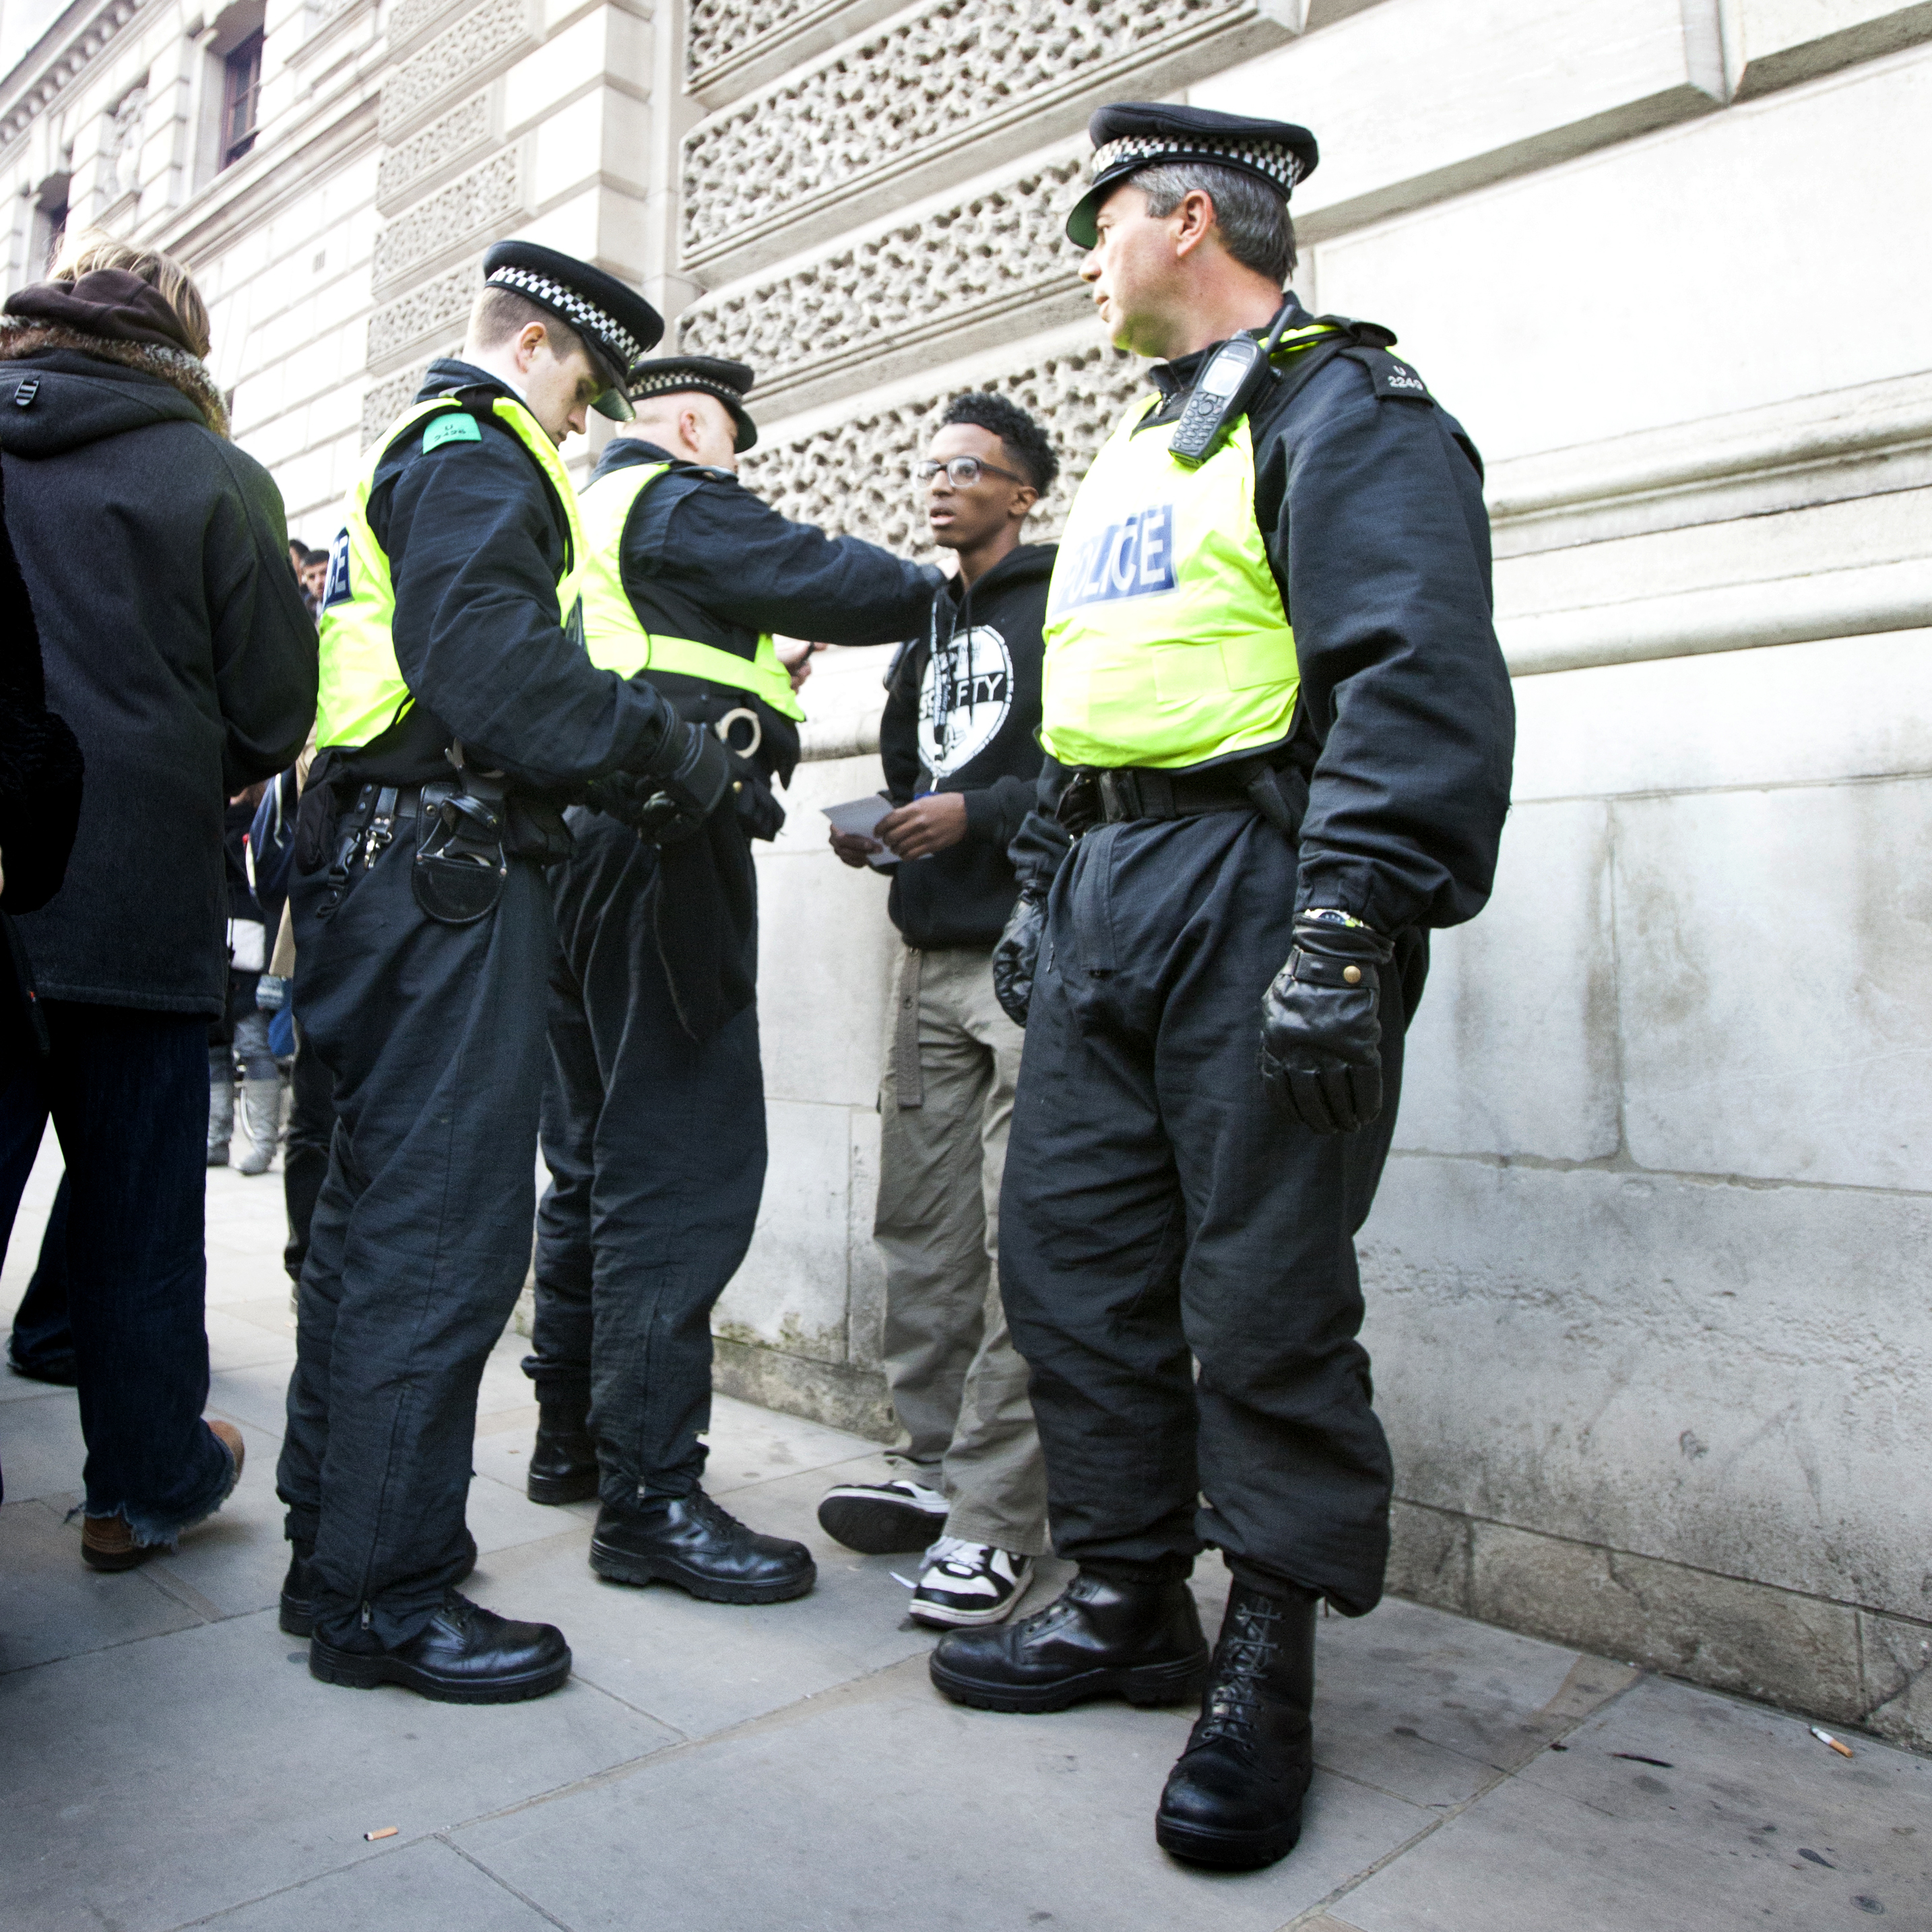 London Police stop and search